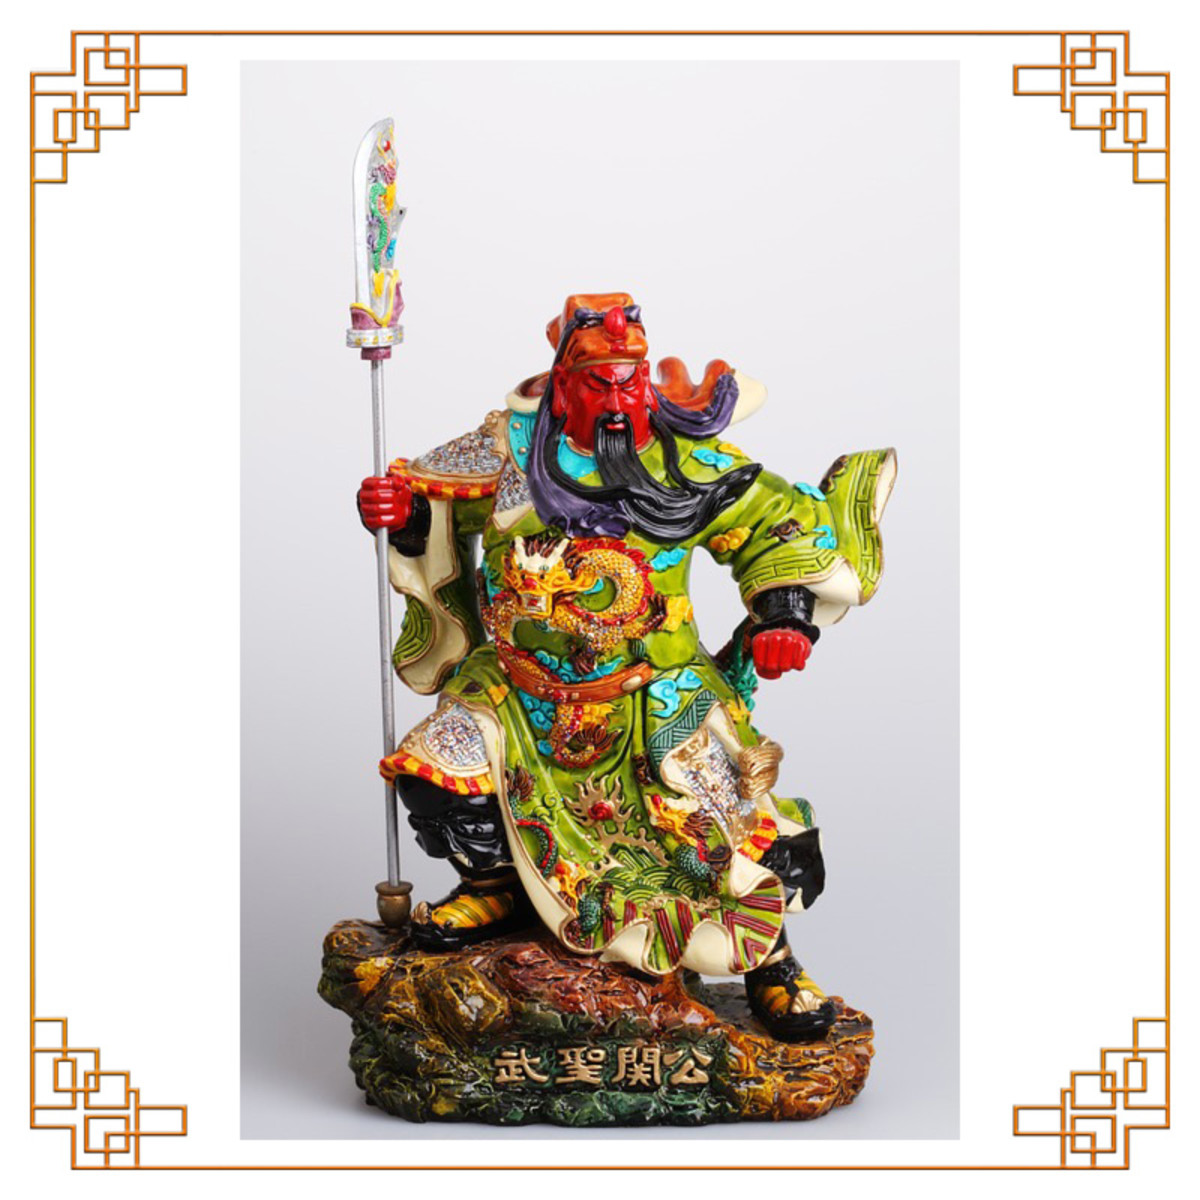 Statue of Guan Gong. A Chinese cultural representation of justice.